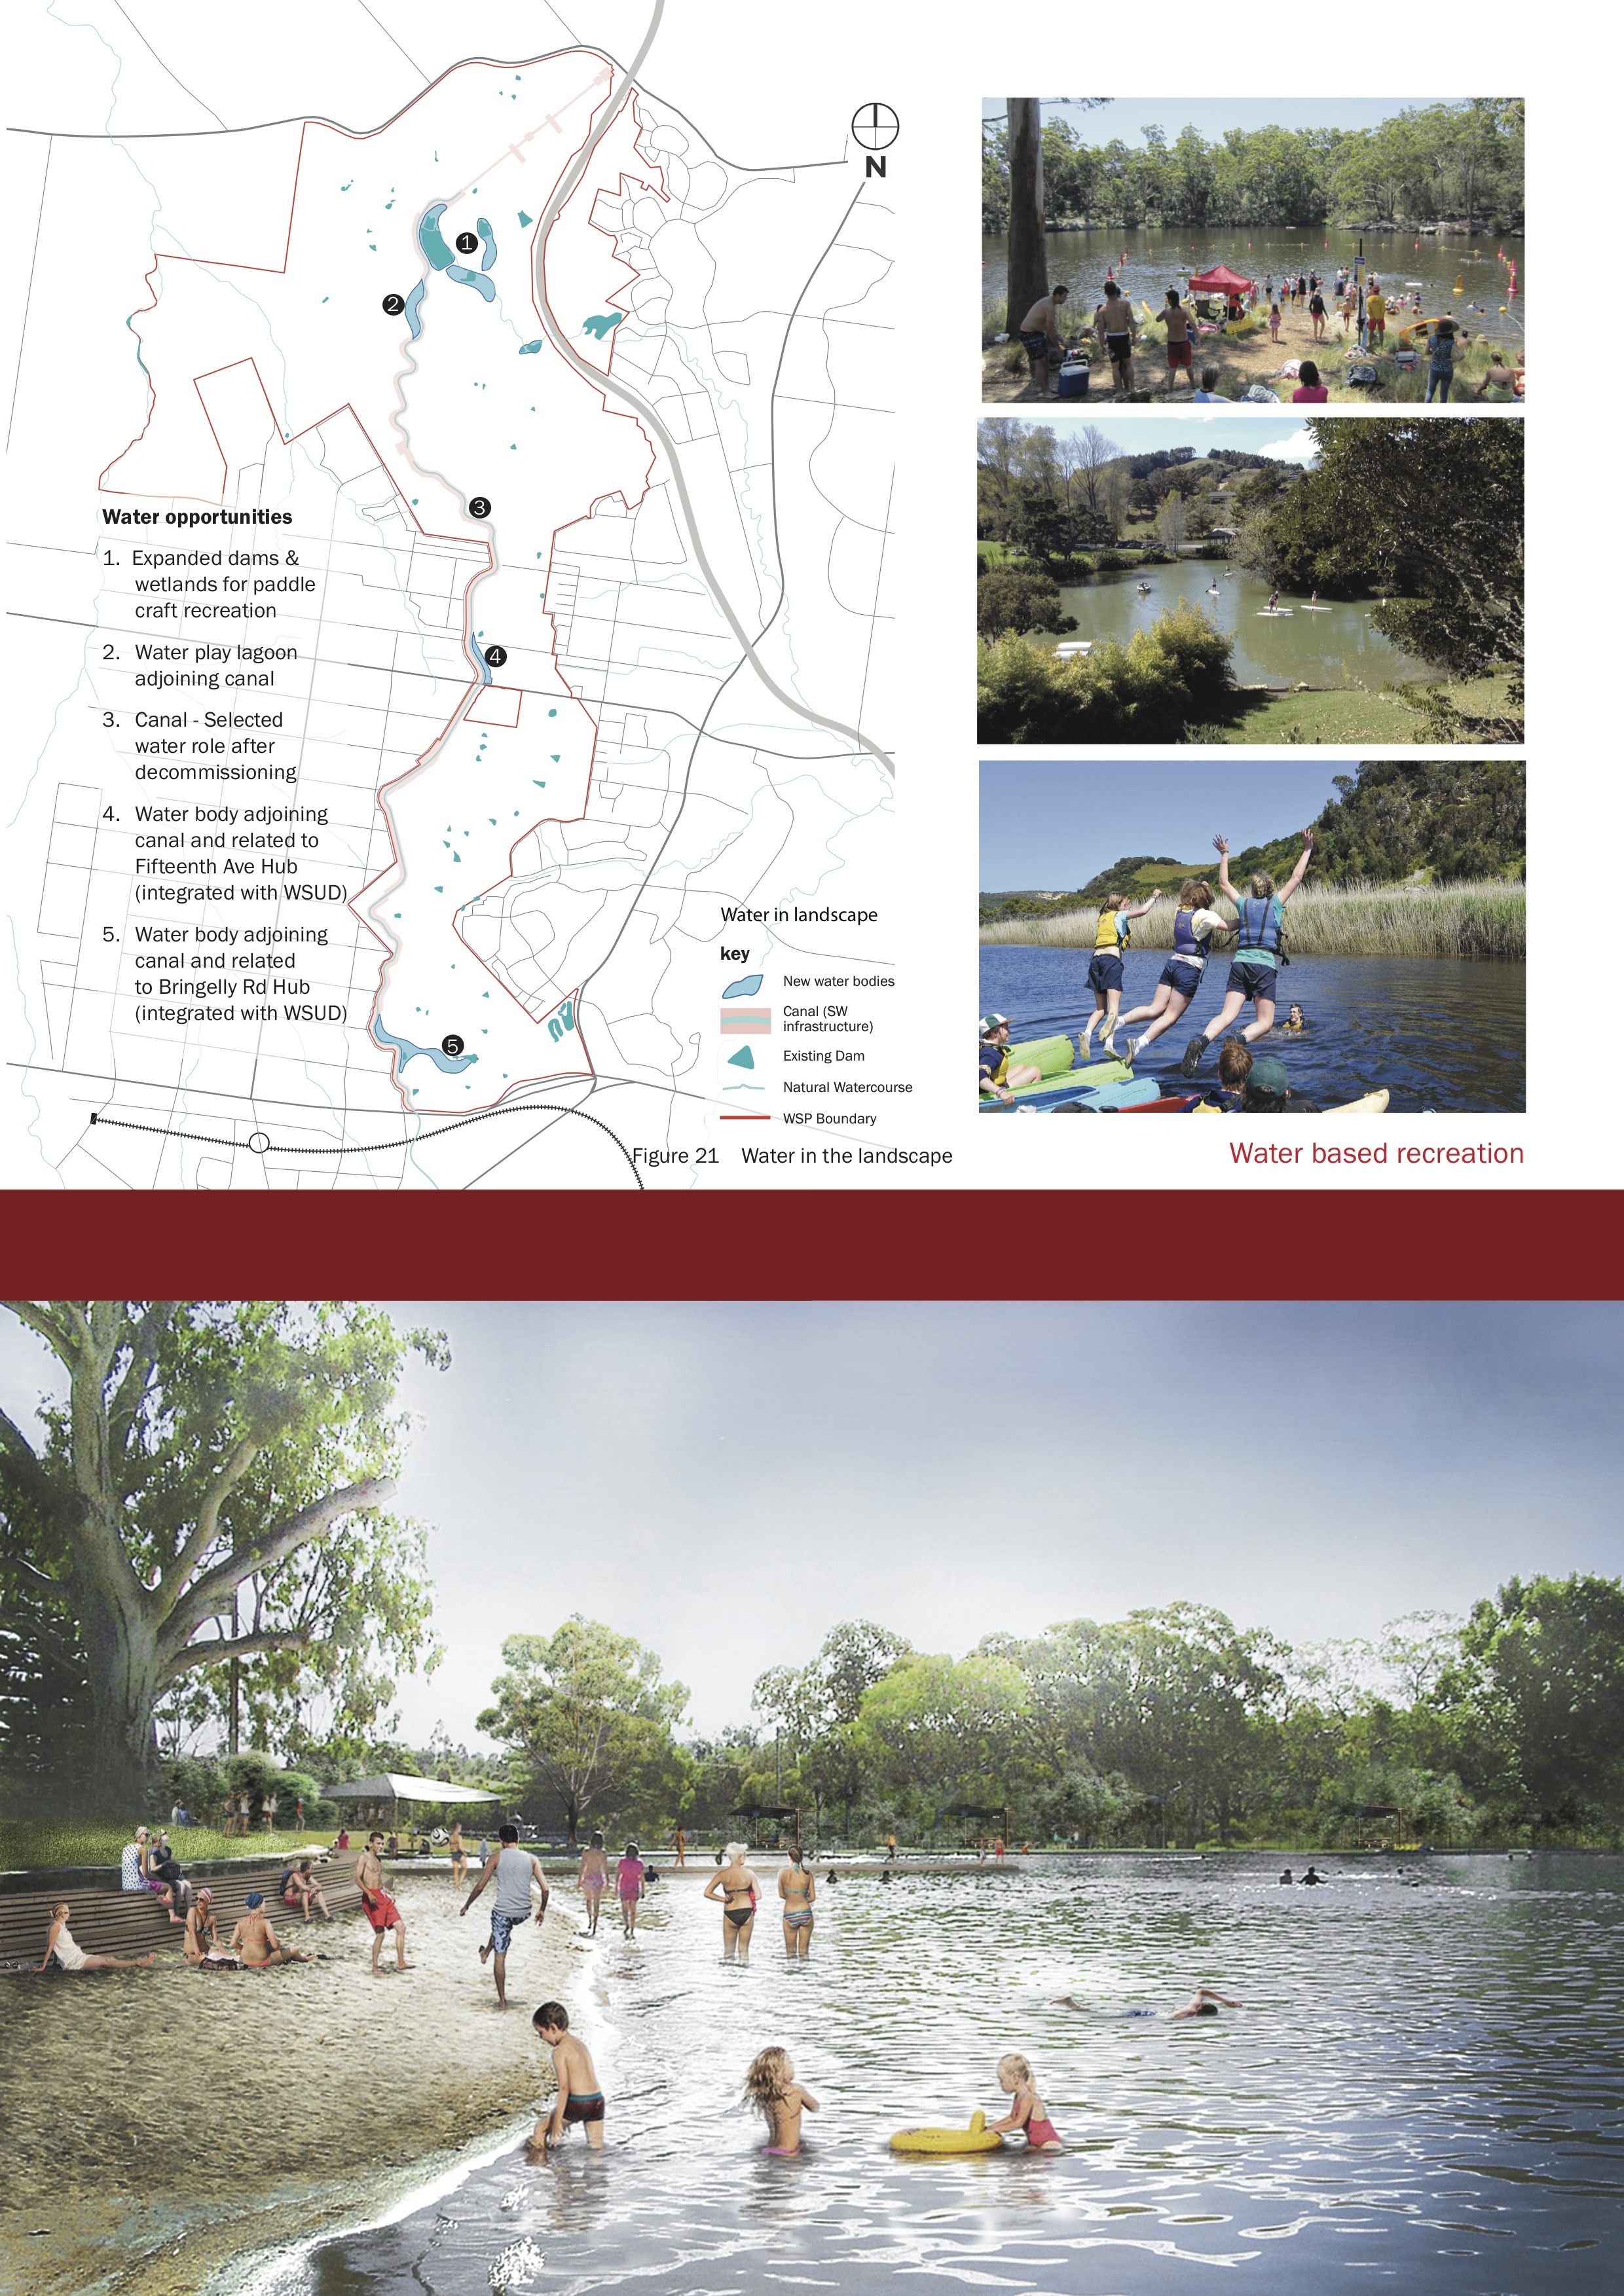 Water based recreation